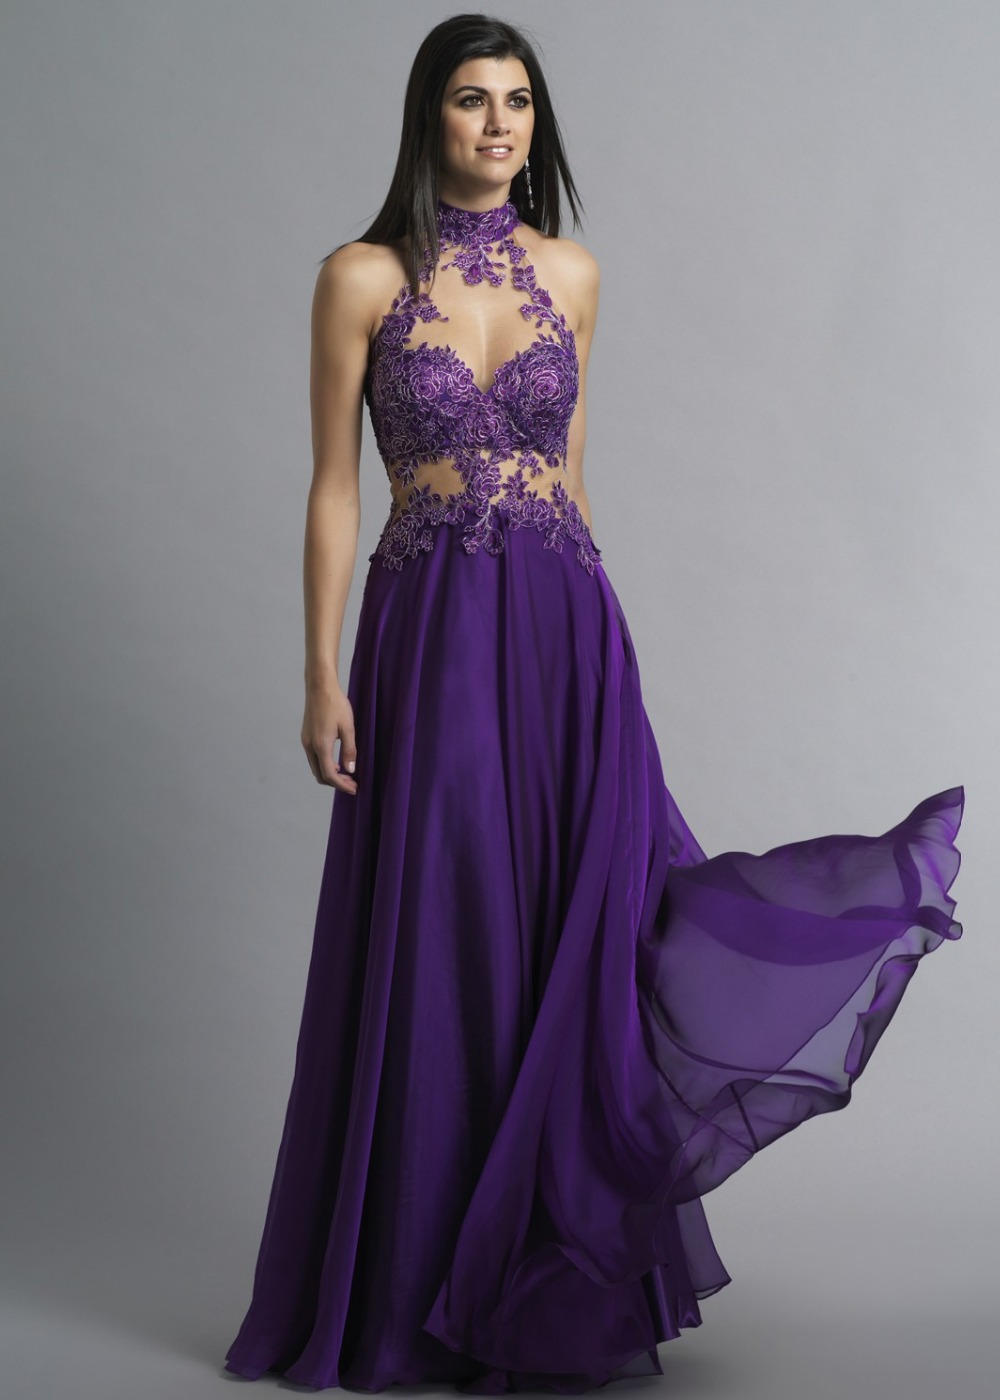 Images of Dark Purple Prom Dress - Reikian